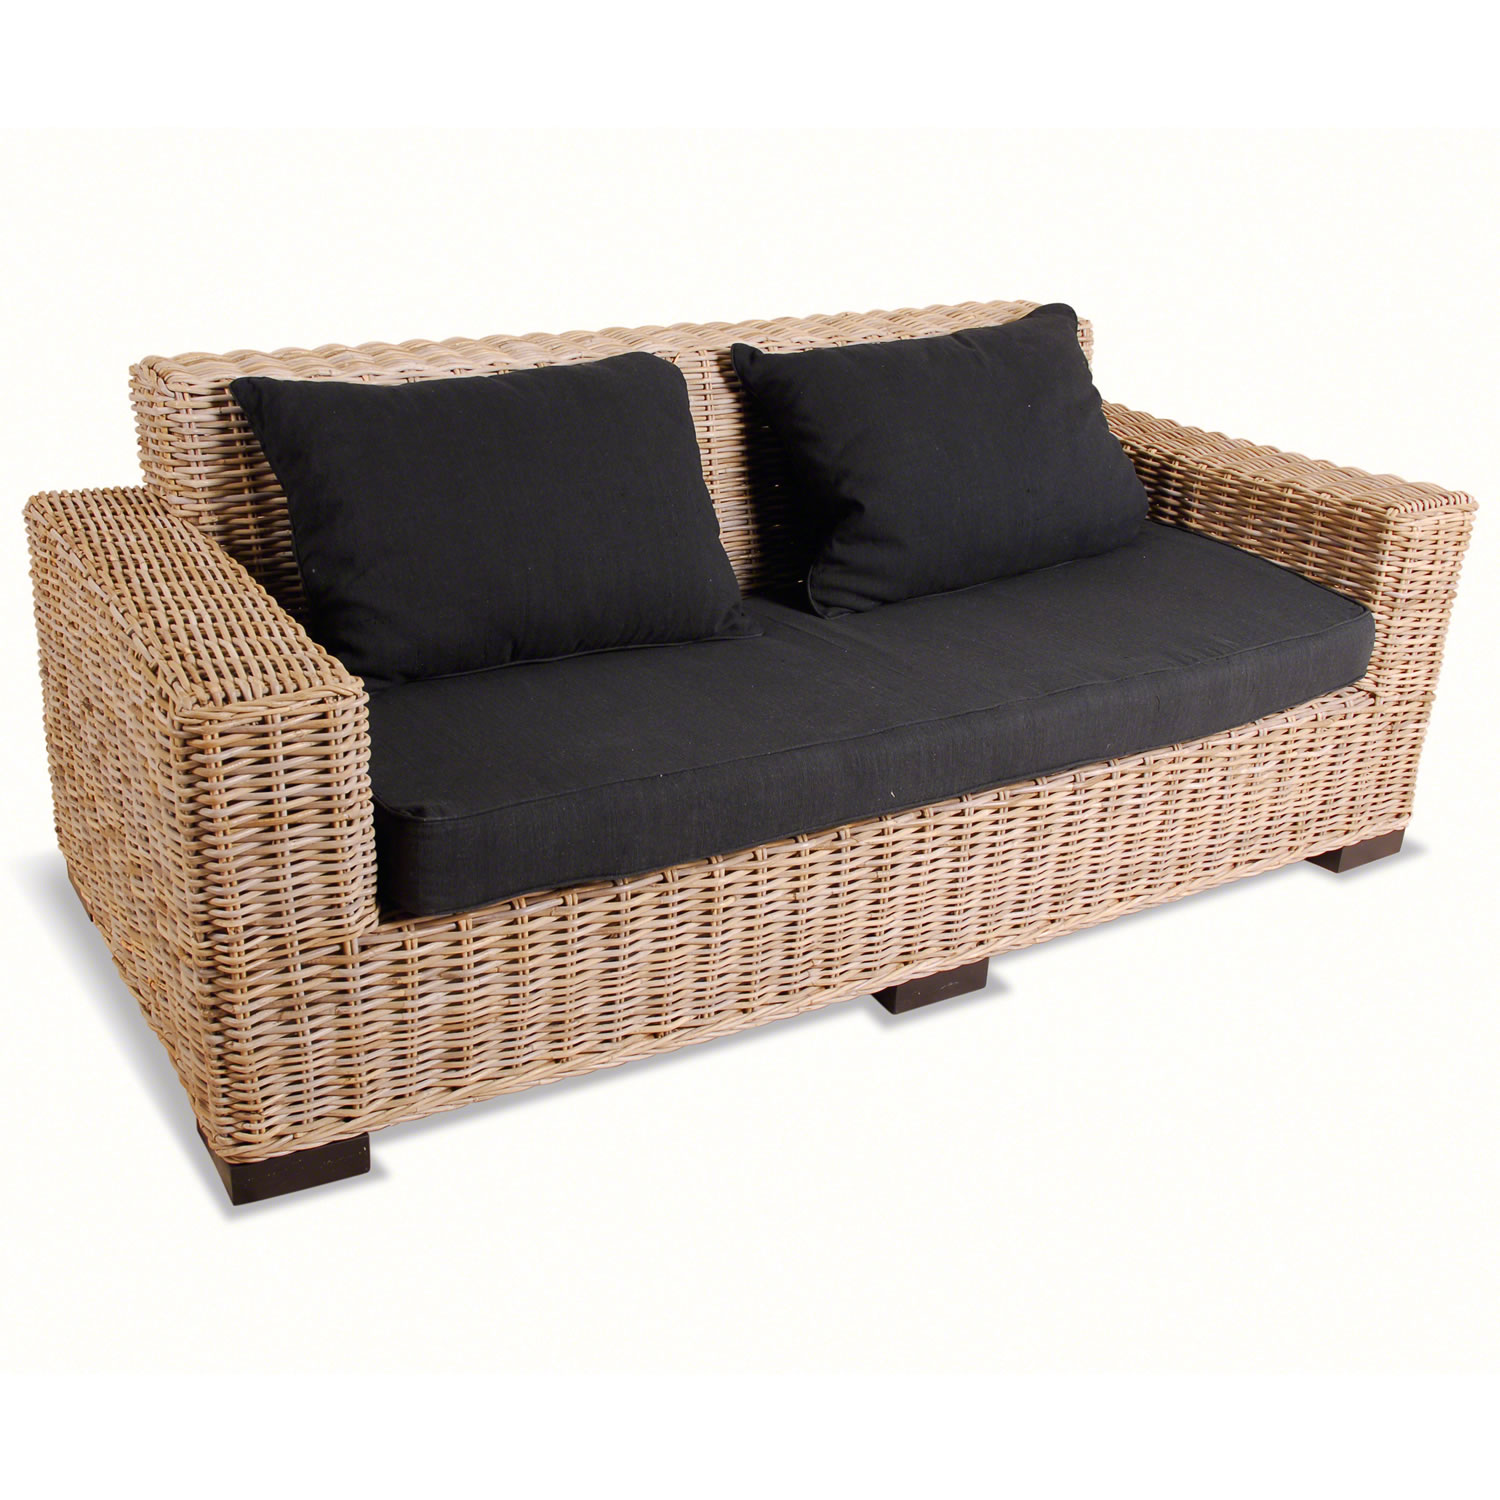 rattan 2 seater sofa decor ideasdecor ideas. Black Bedroom Furniture Sets. Home Design Ideas